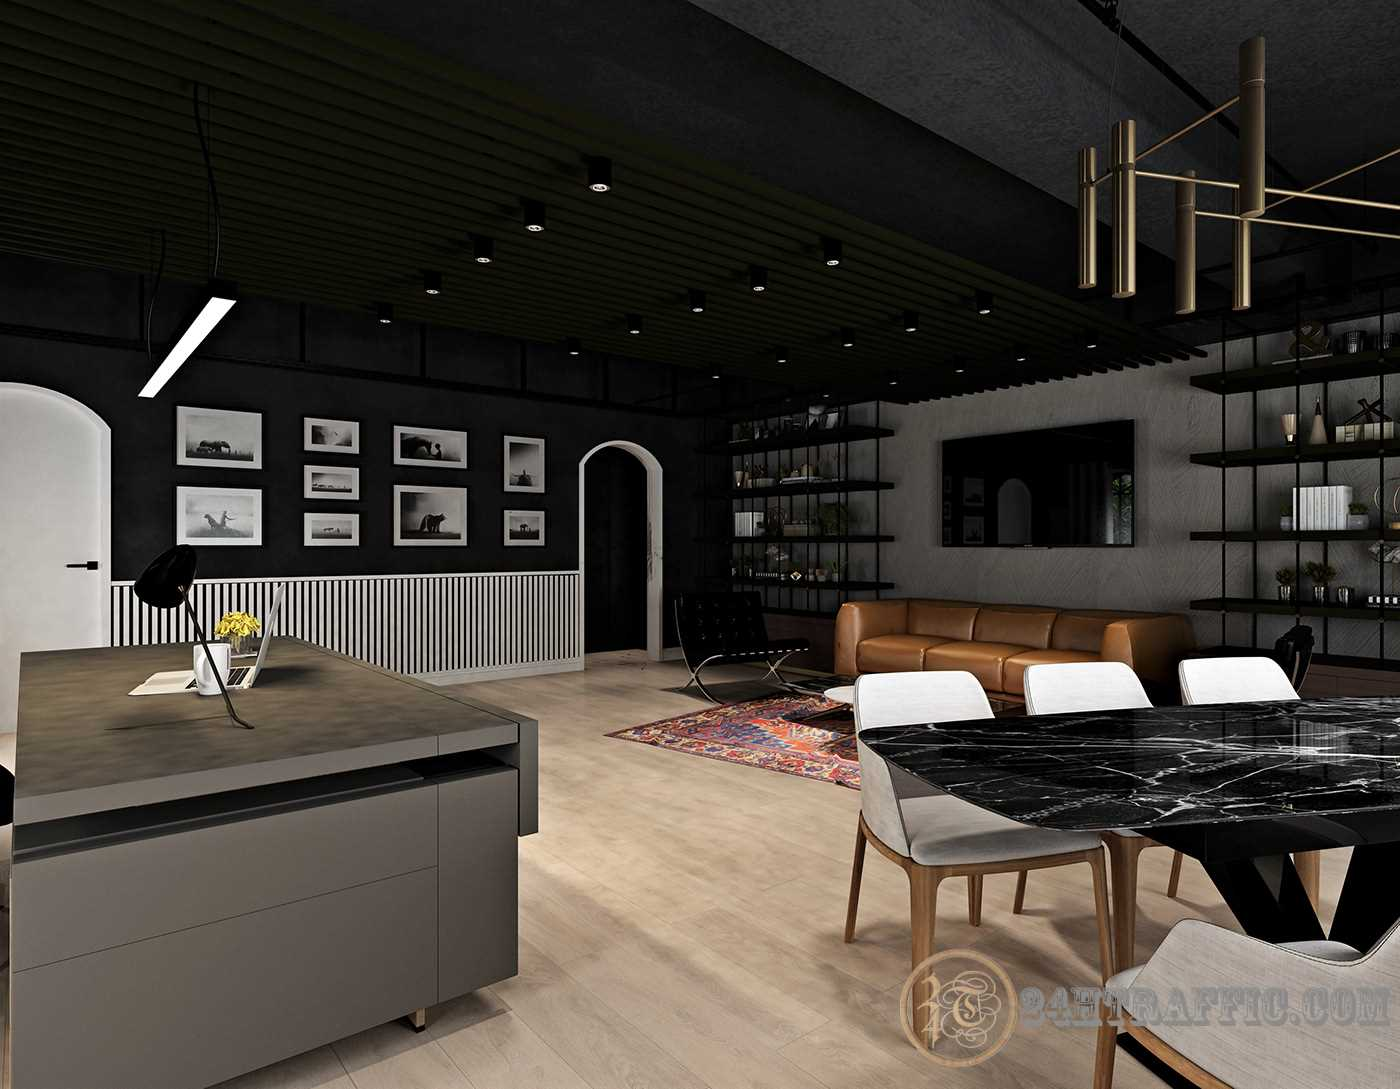 3dSkyHost: 3D Interior Scenes File 3dsmax Model Executive Room